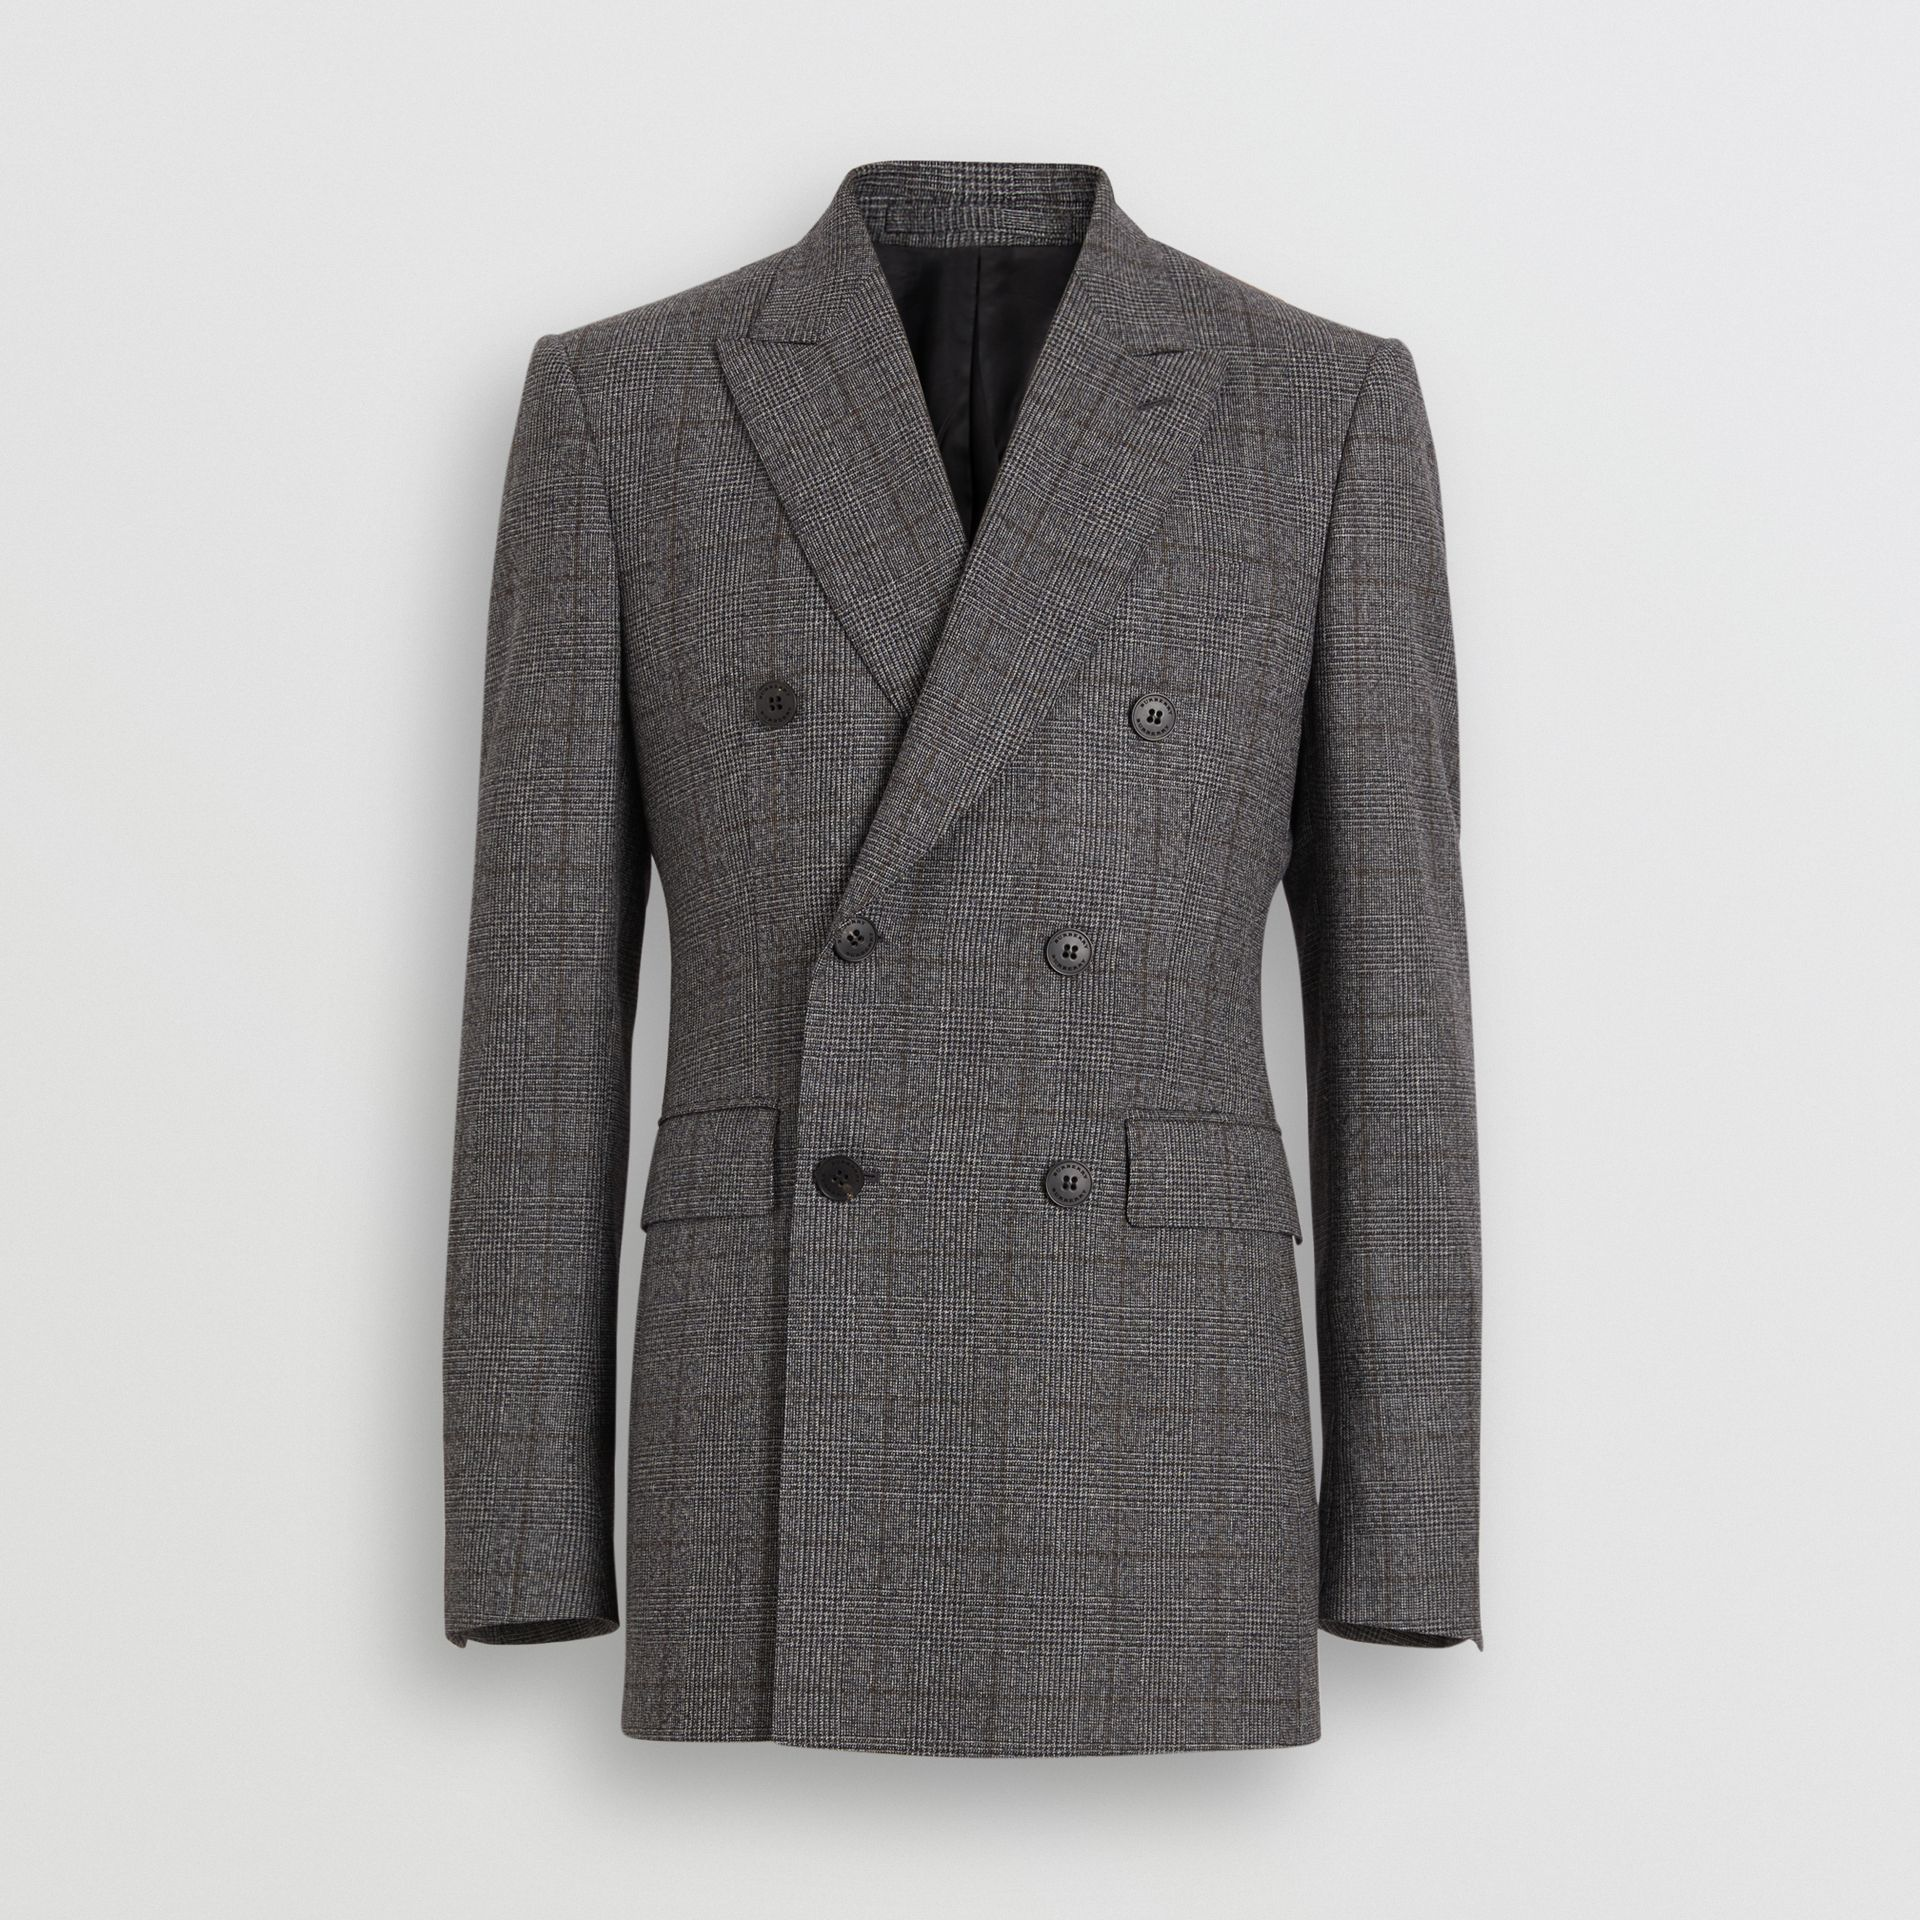 Classic Fit Prince of Wales Check Wool Suit in Charcoal Melange - Men | Burberry Singapore - gallery image 3